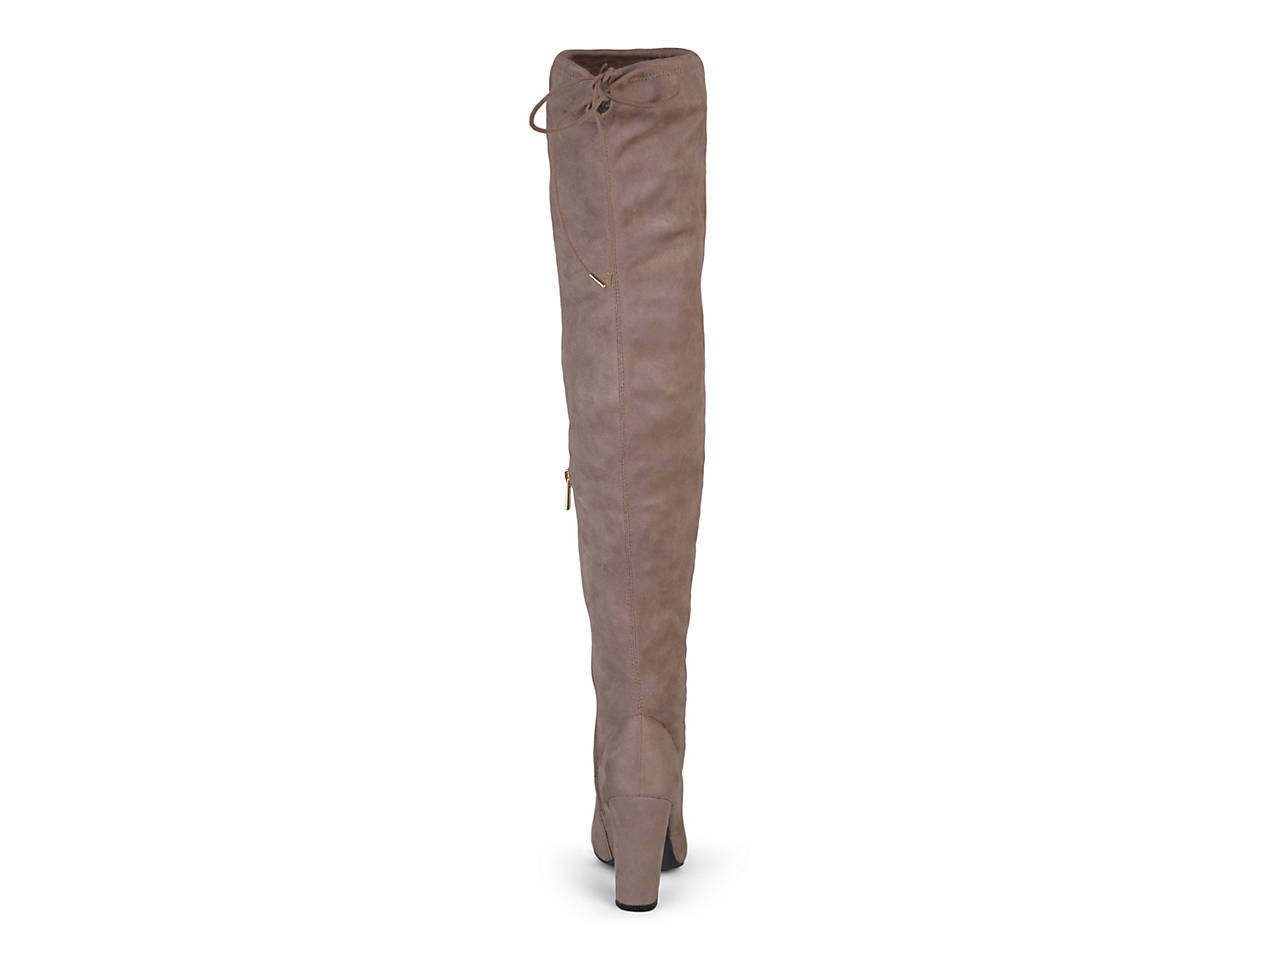 4c344aad5 Journee Collection Maya Wide Calf Thigh High Boot Women's Shoes | DSW